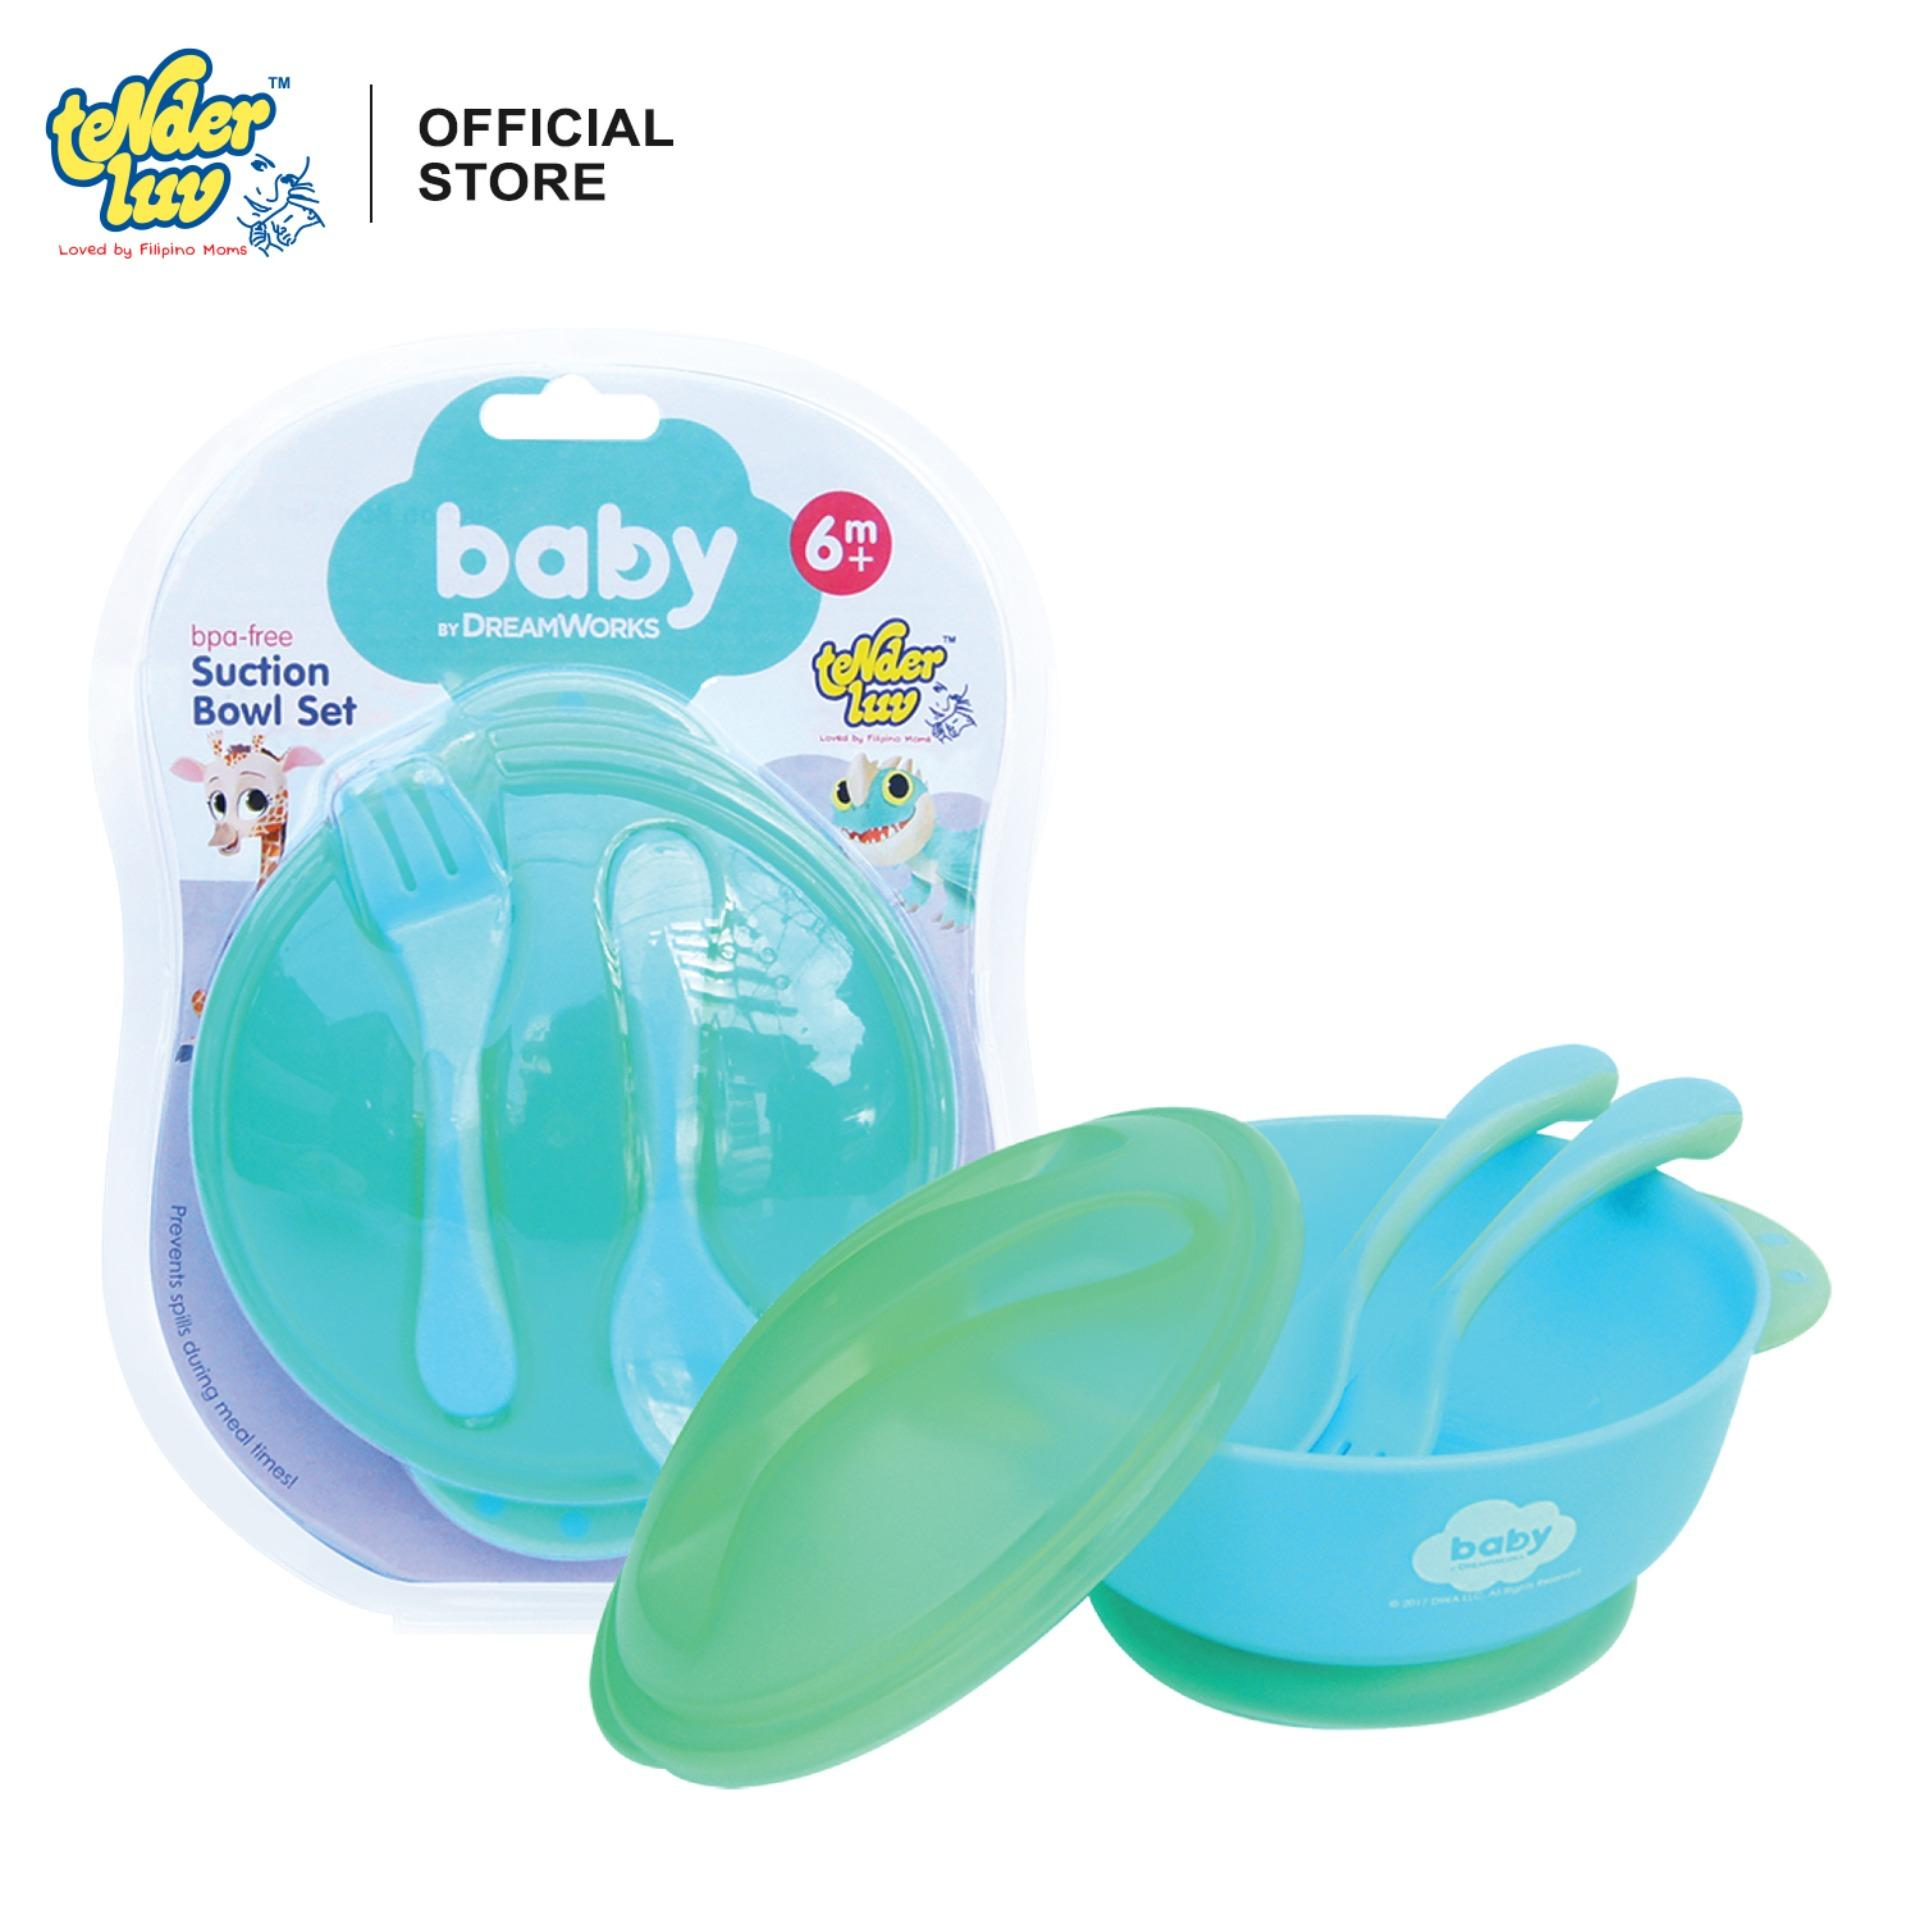 Baby Utensils For Sale Spoons Online Brands Prices Reviews Munchkin Easy Squeezy Spoon Dreamworks Suction Bowl Set